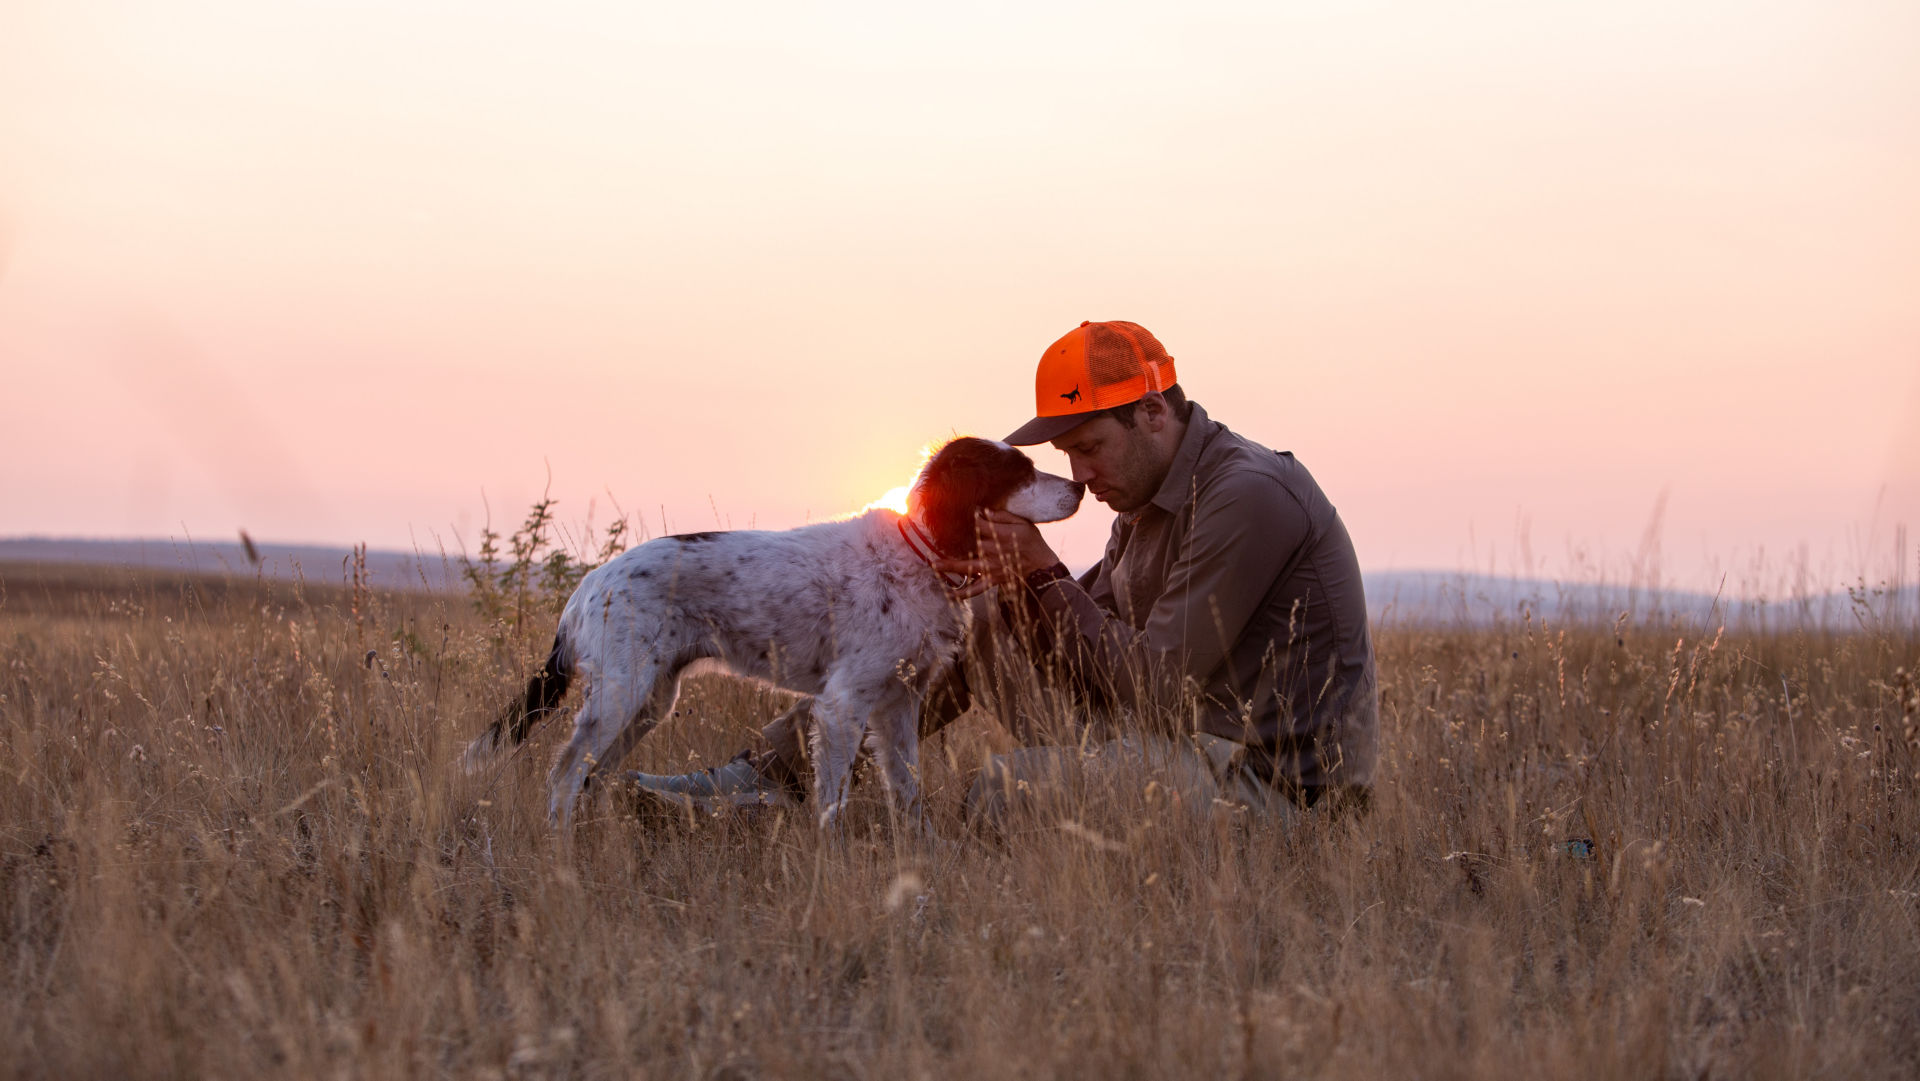 Simon Perkins and his dog, COPA in an open field